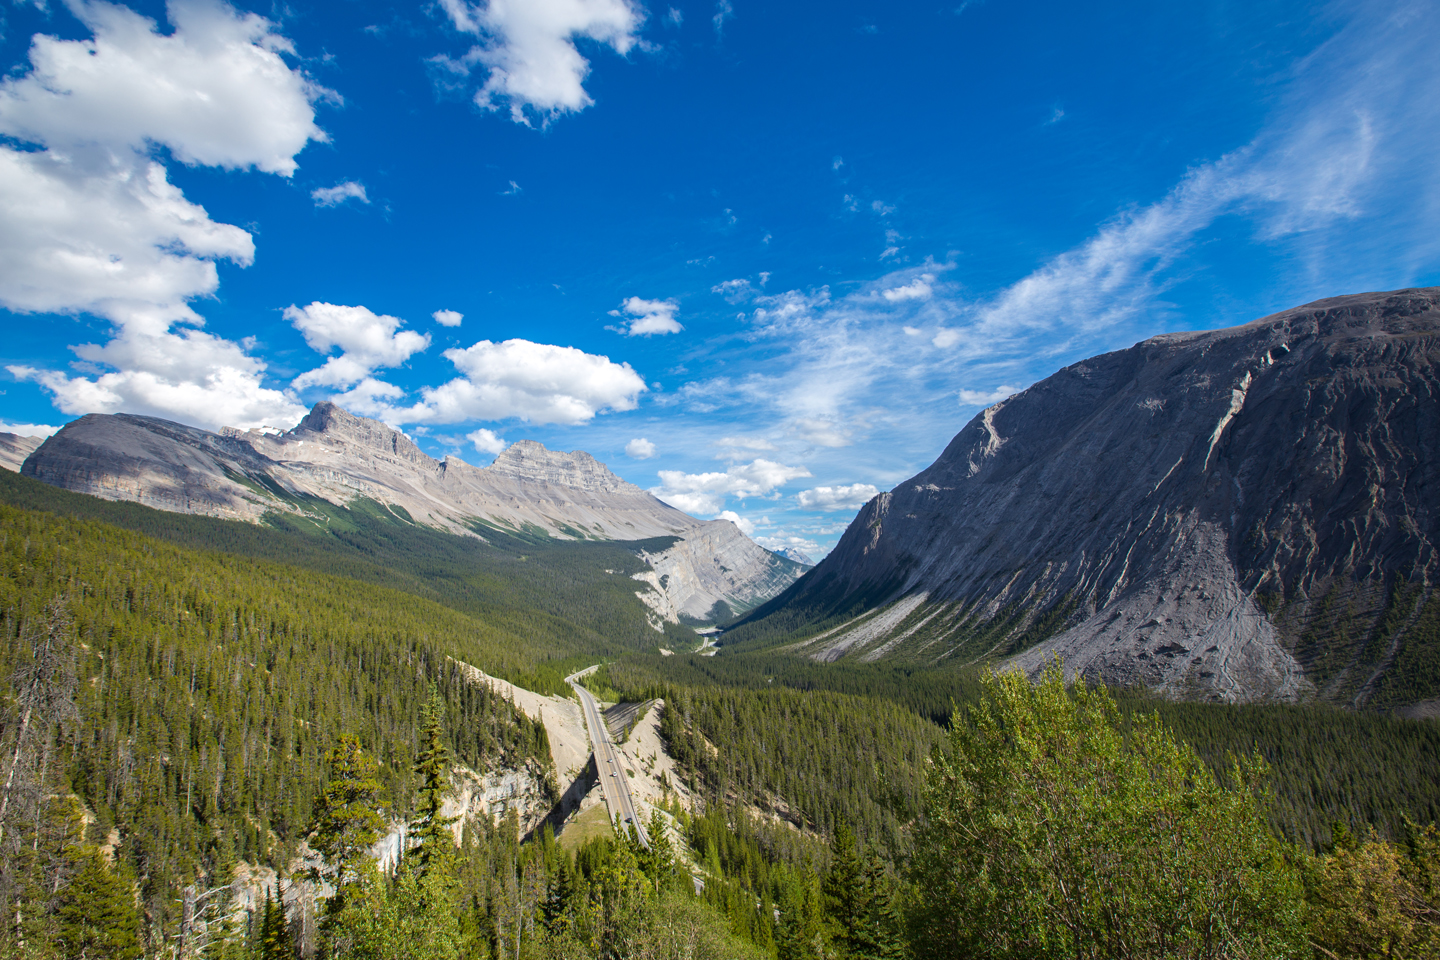 icefields-parkway-overlook-road